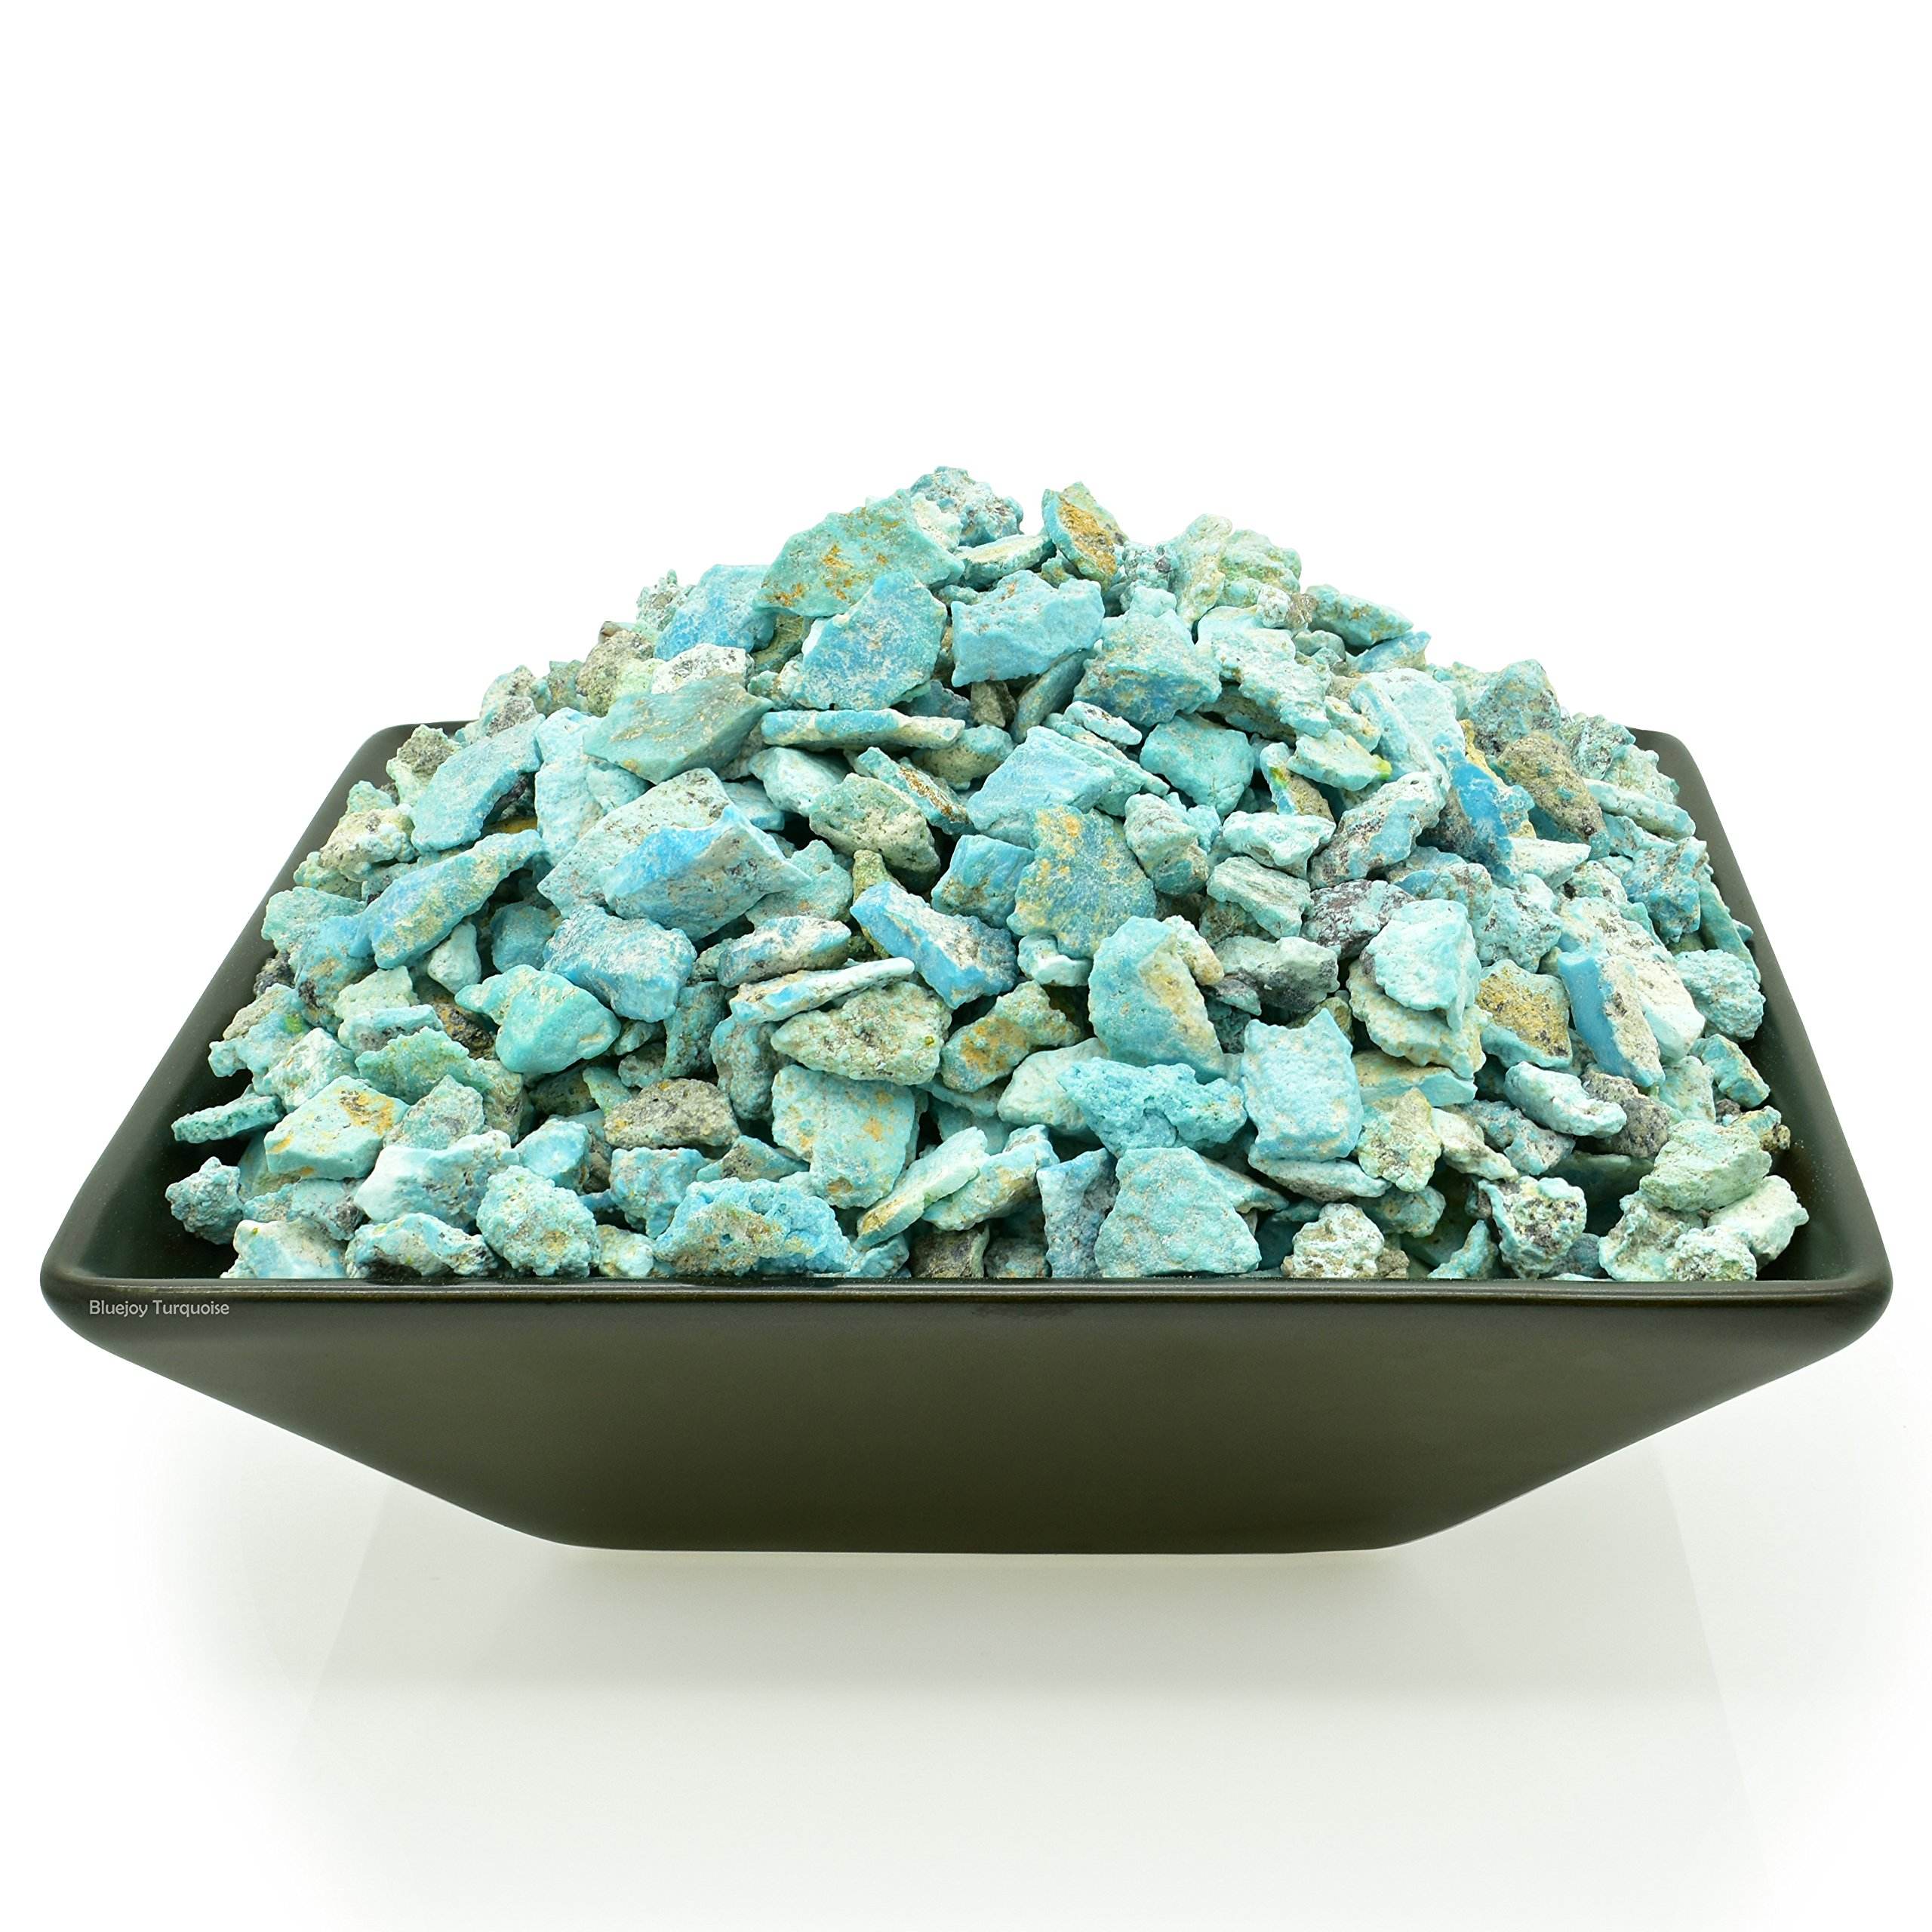 Bluejoy Genuine Pure Natural Sleeping Beauty Turquoise Rough Stone Baby-Size Nuggets for Inlay and Jewelry Design (1-Ounce, Dark-Blue)